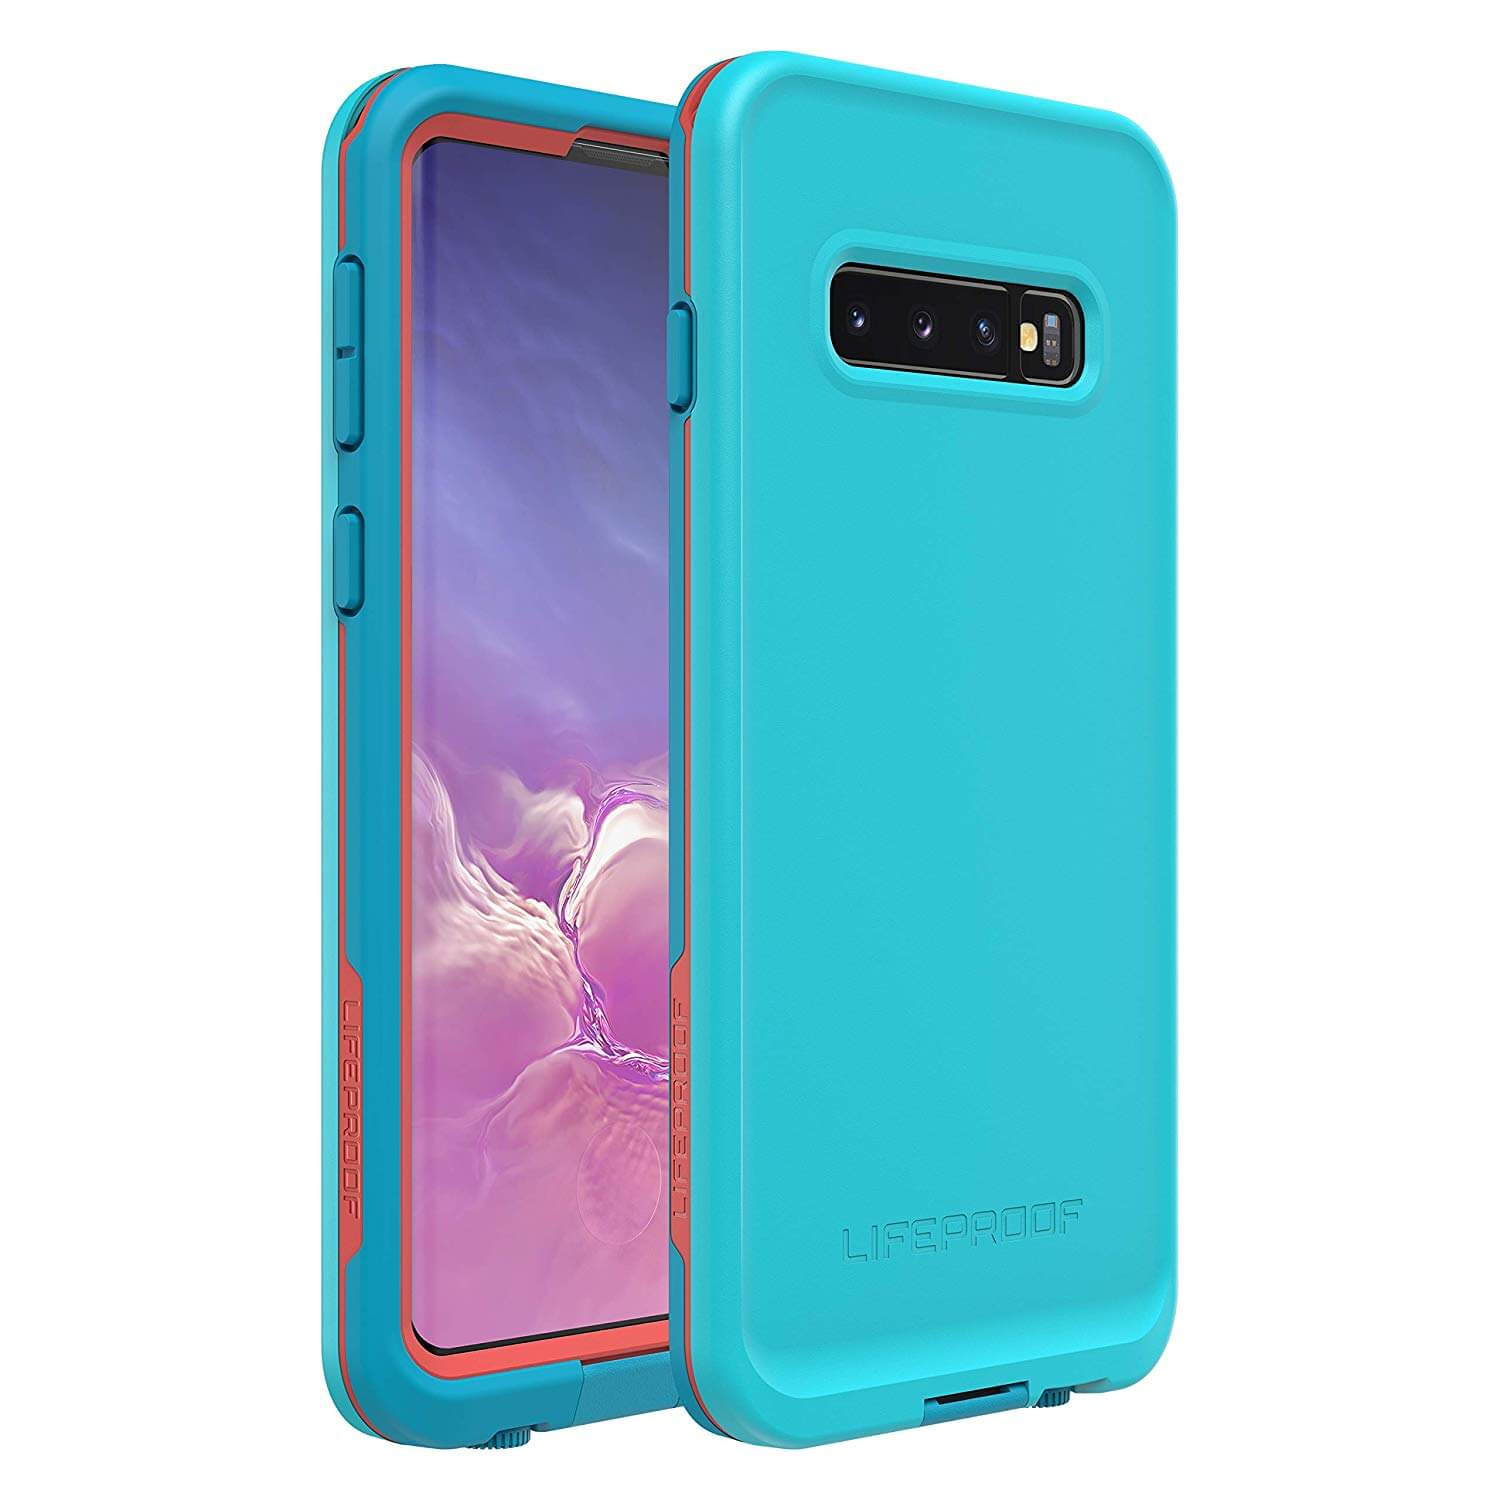 LifeProof Fre case for Samsung Galaxy S10 (blue)